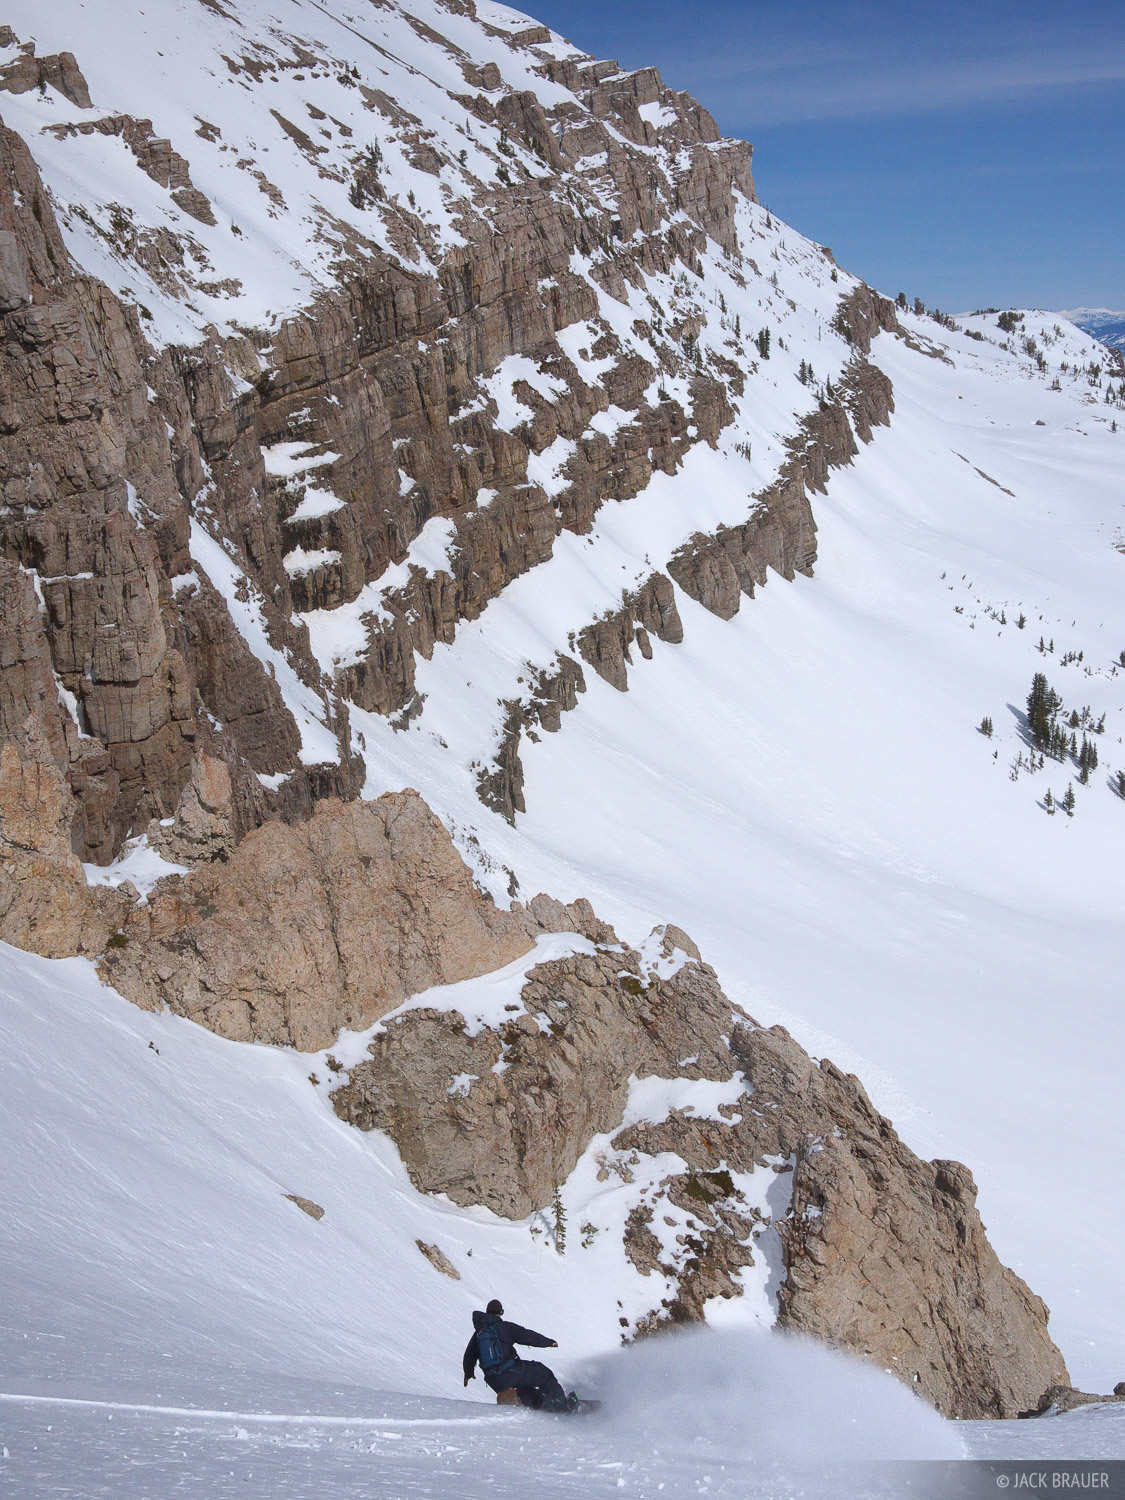 Jensen Canyon, snowboarding, Jackson Hole, Wyoming, photo